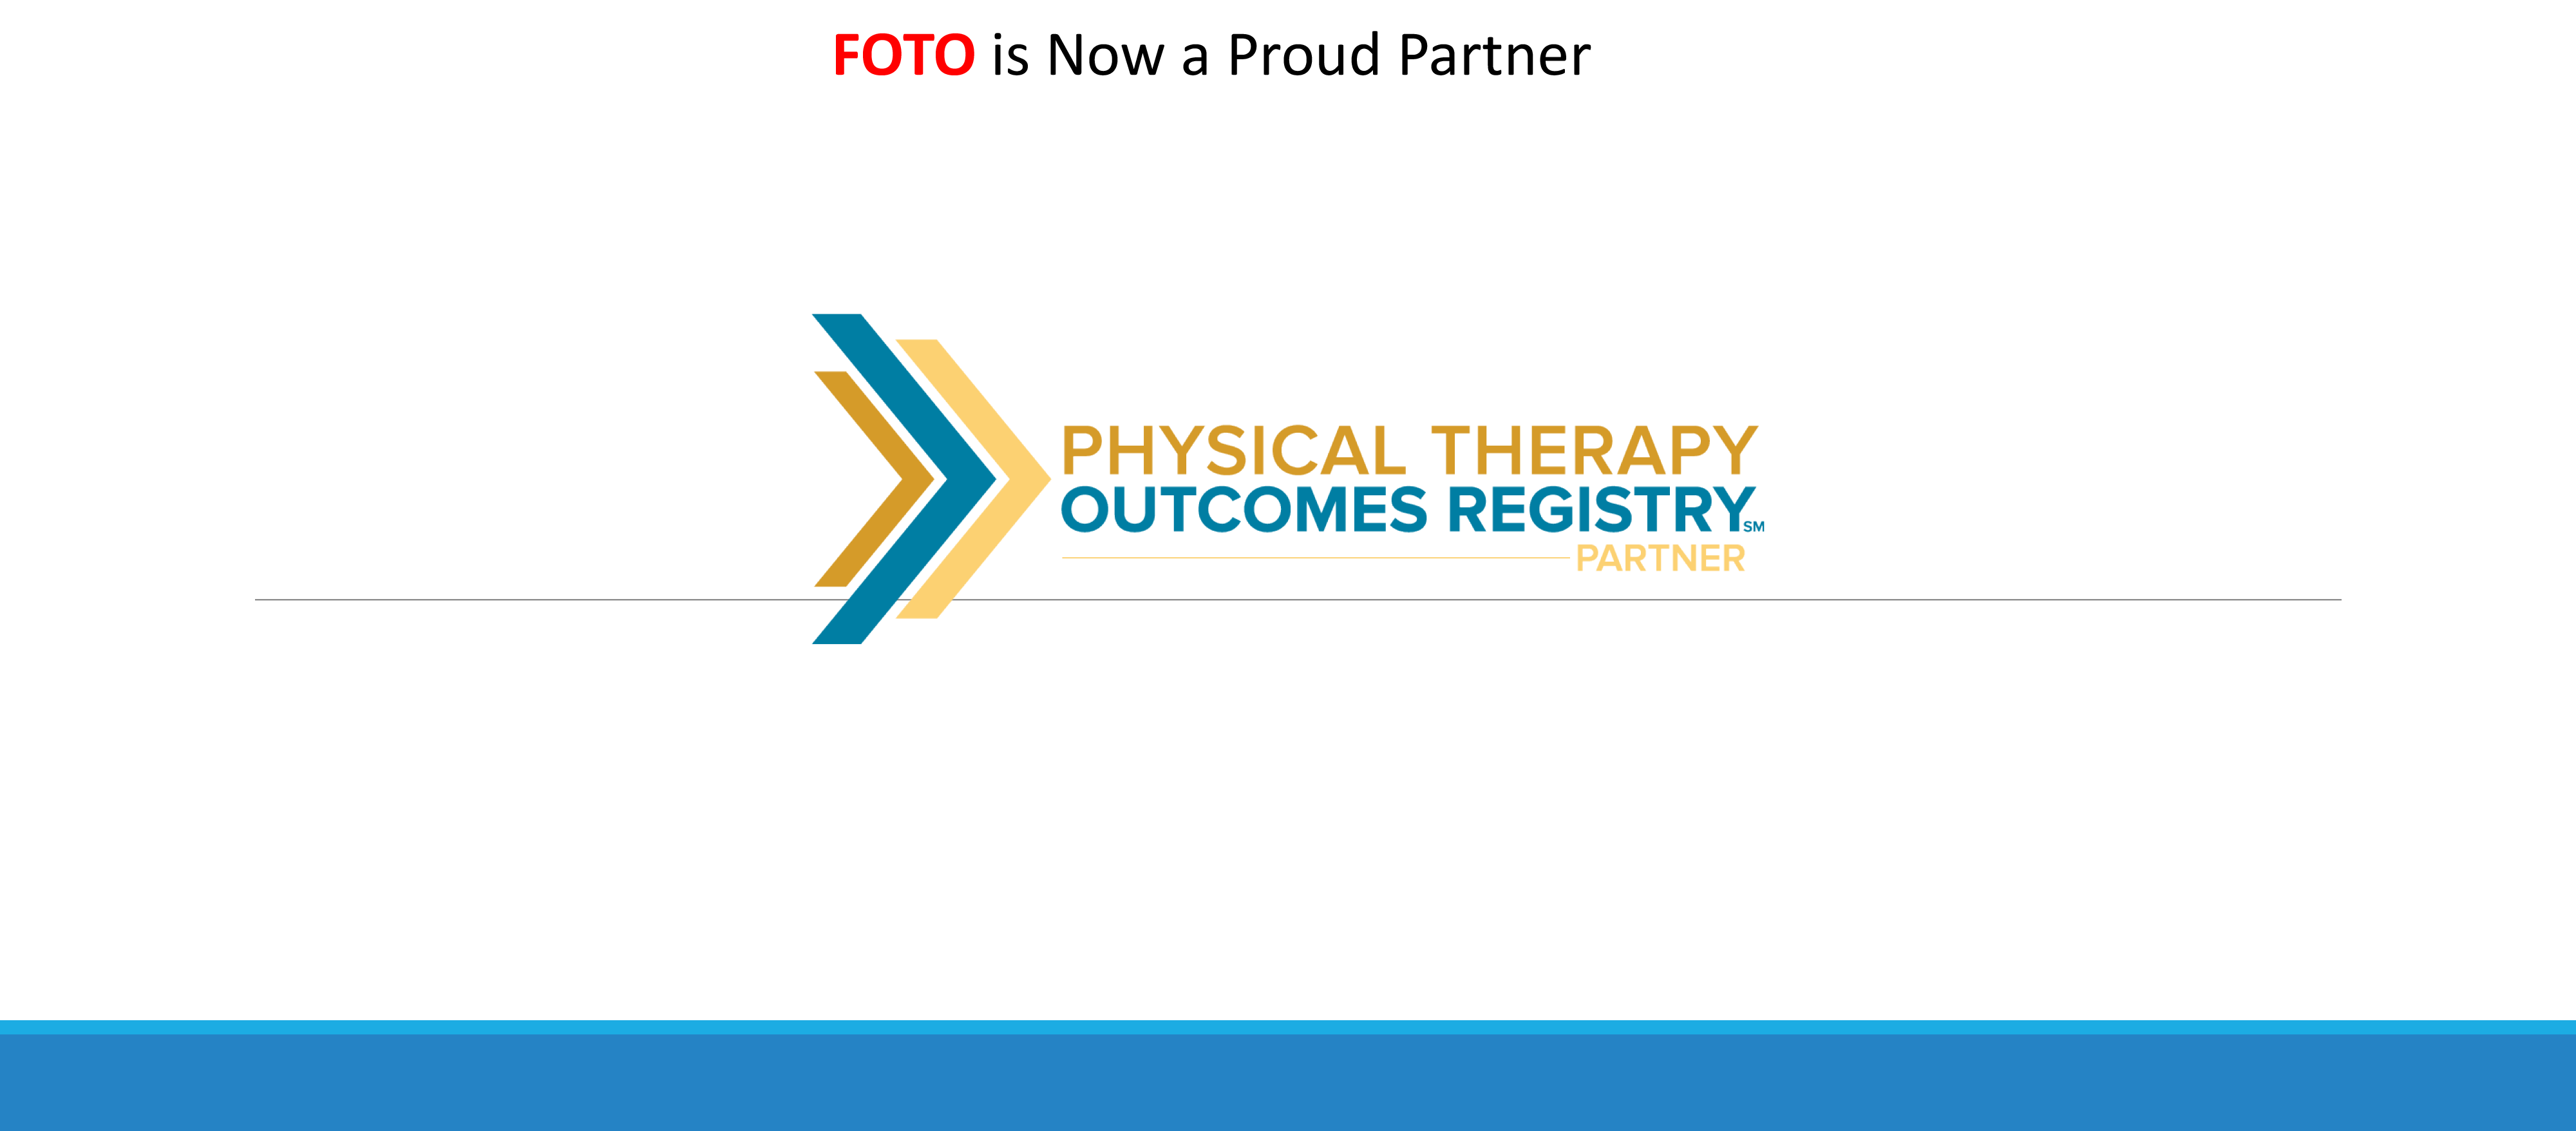 physical therapy outcomes registry